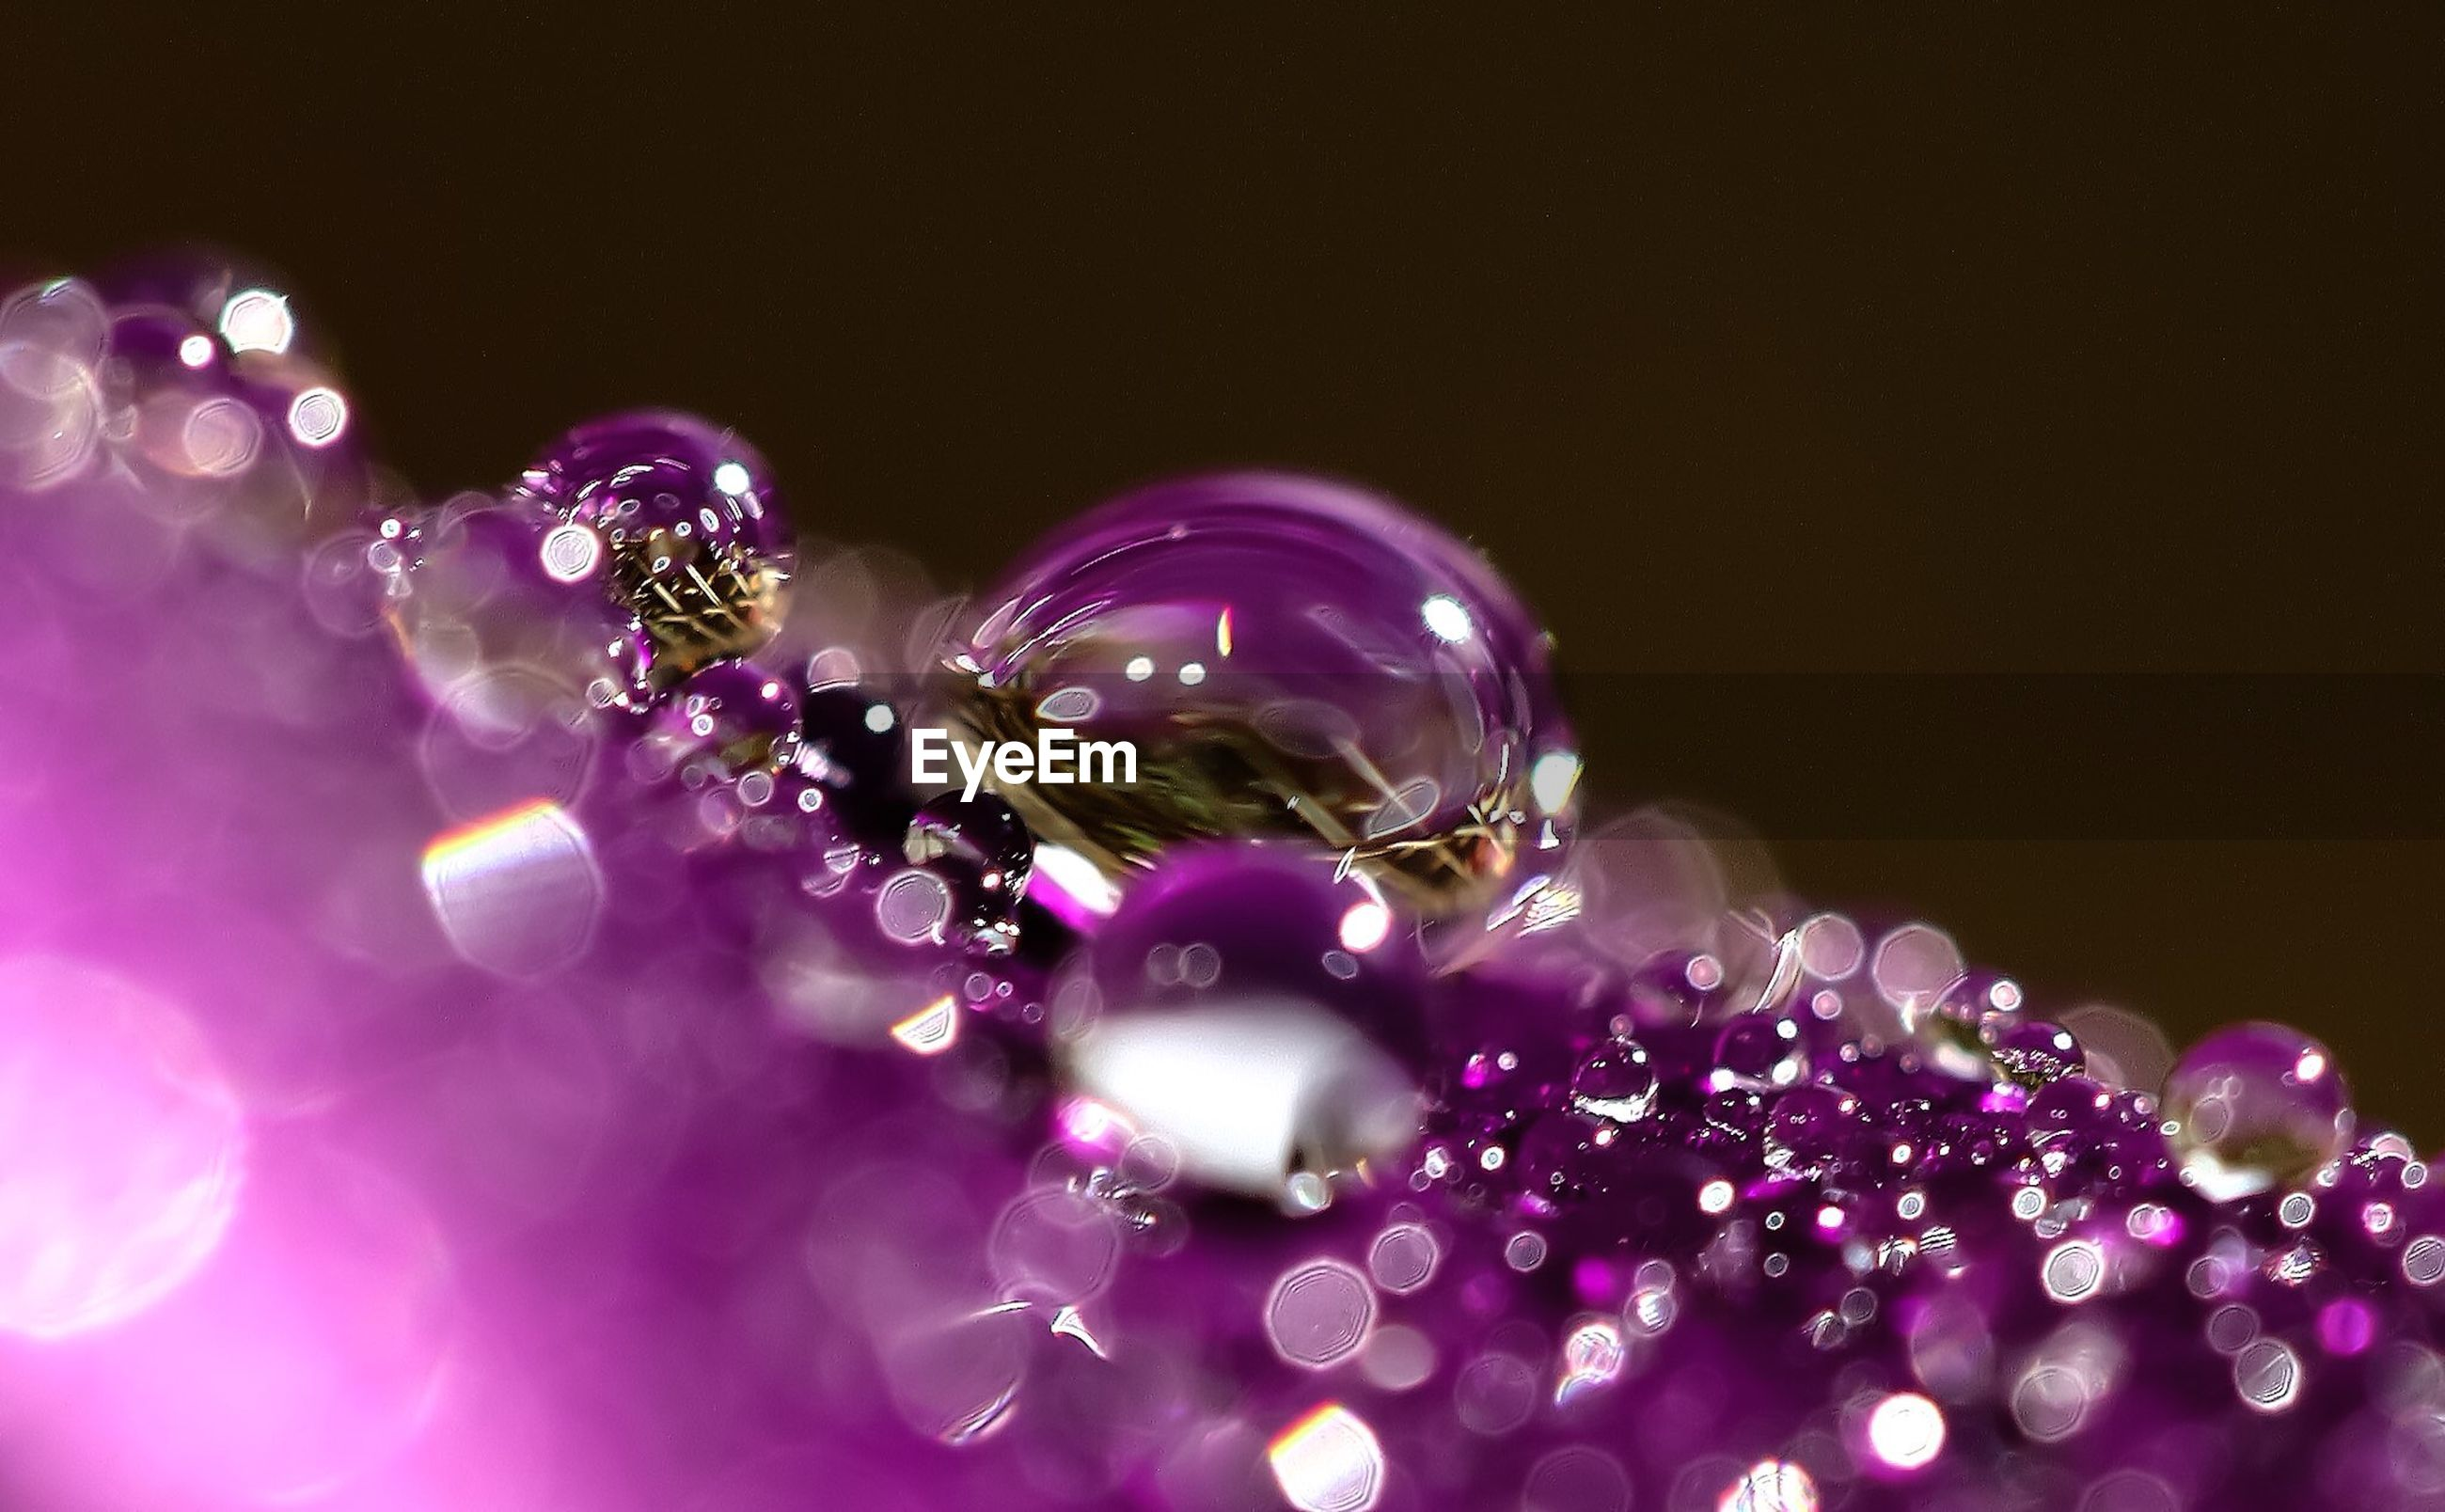 close-up, studio shot, shiny, purple, water, copy space, fragility, bubble, selective focus, no people, drop, multi colored, mid-air, celebration, transparent, freshness, purity, black background, reflection, beauty in nature